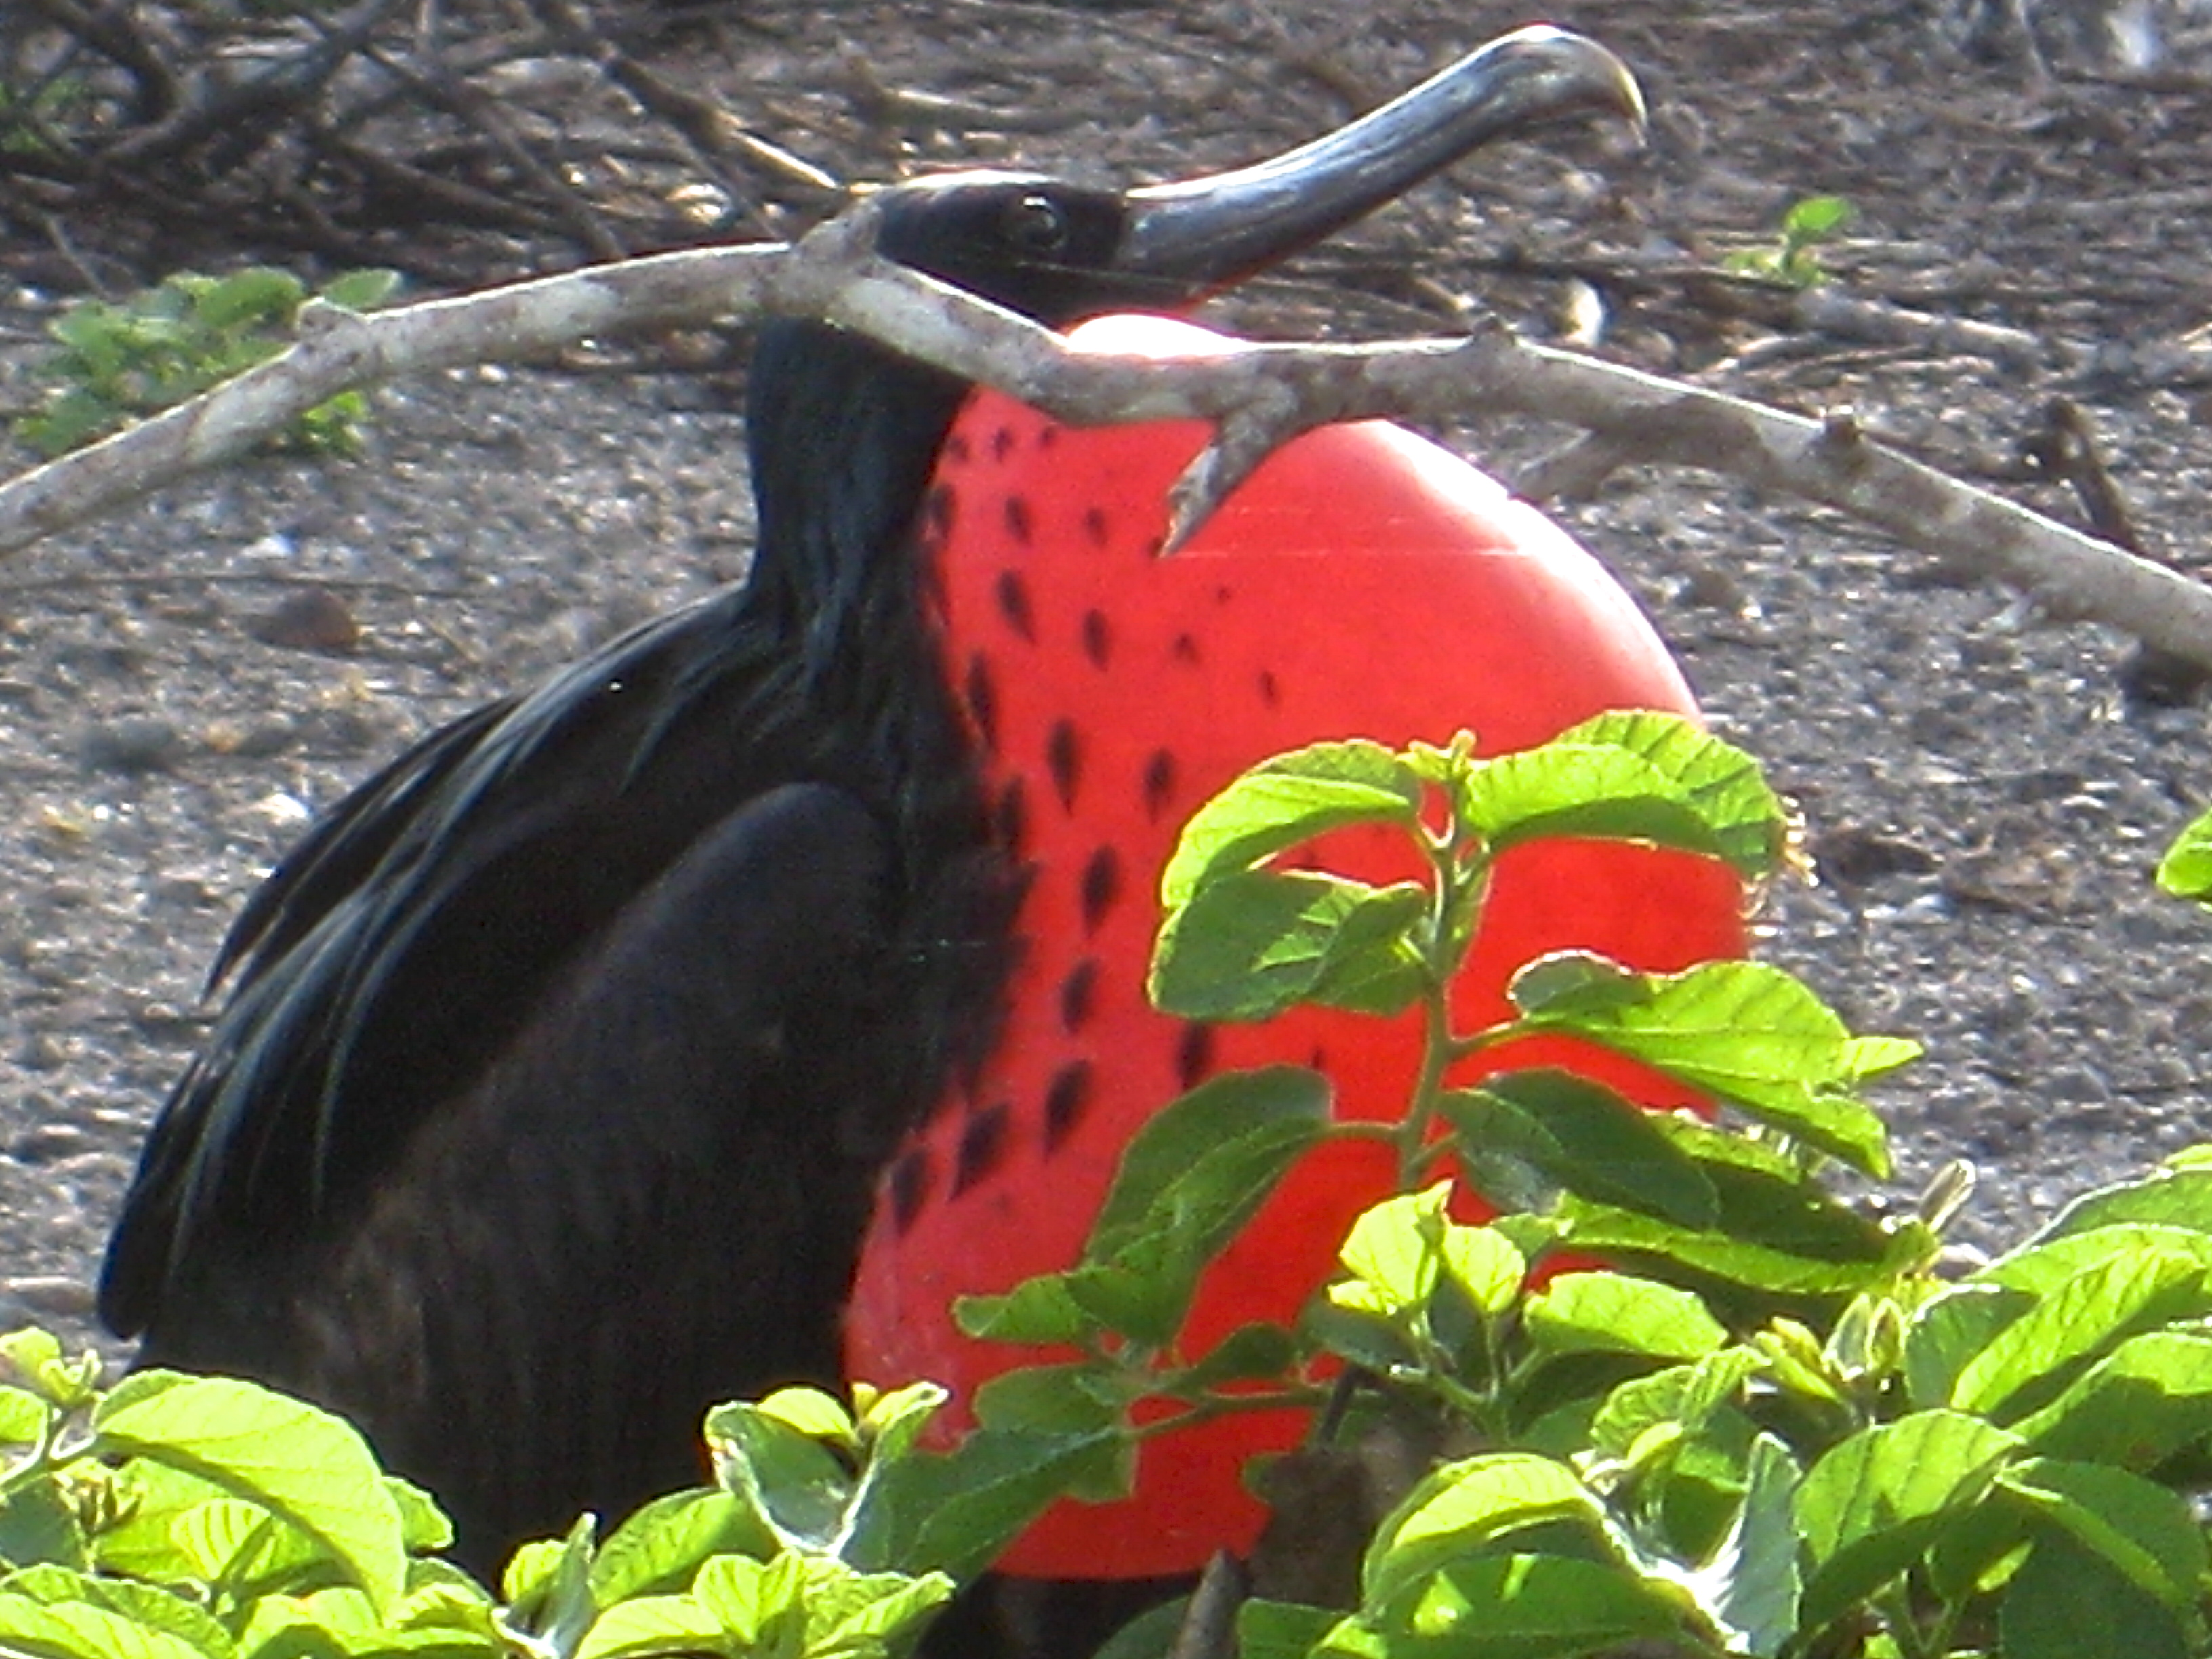 Magnificent Red throated frigate bird in the Galapagos Islands